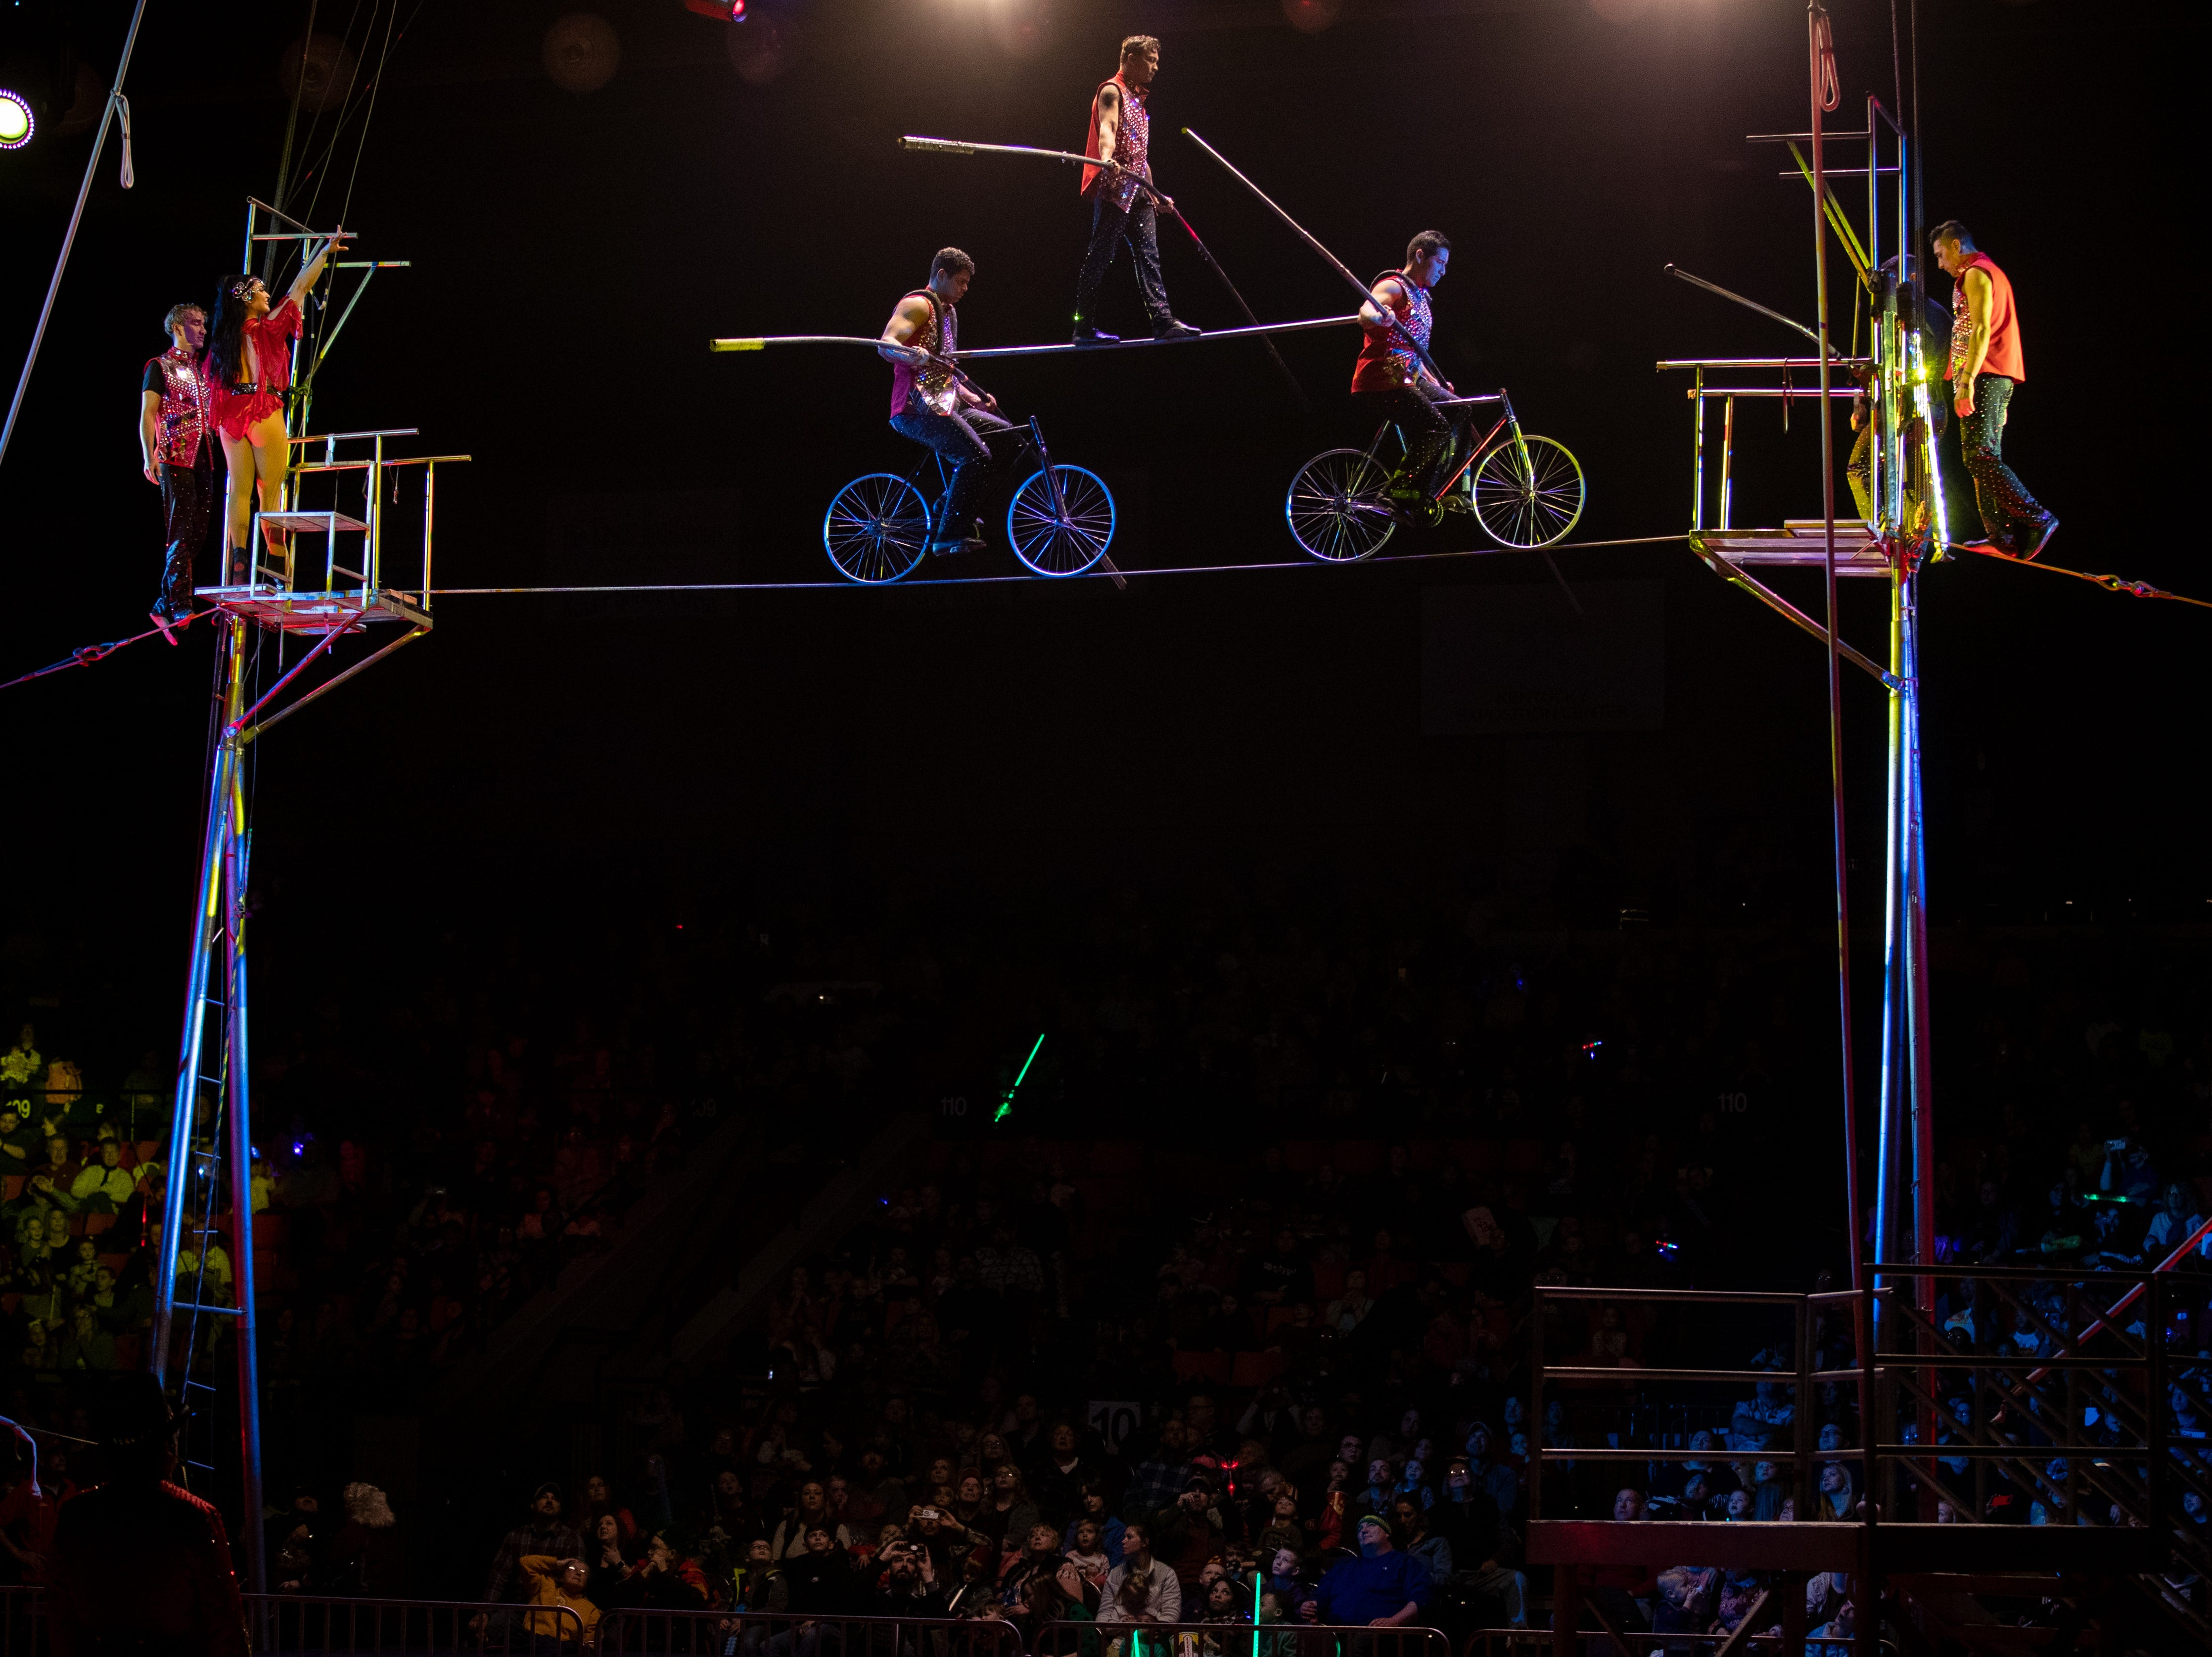 """High above the Broadbent Arena floor, three tightrope performers balance on two bikes, a move touted """"the human pyramid"""" by the ringmaster, Saturday, Feb. 9, 2019 in Louisville Ky."""